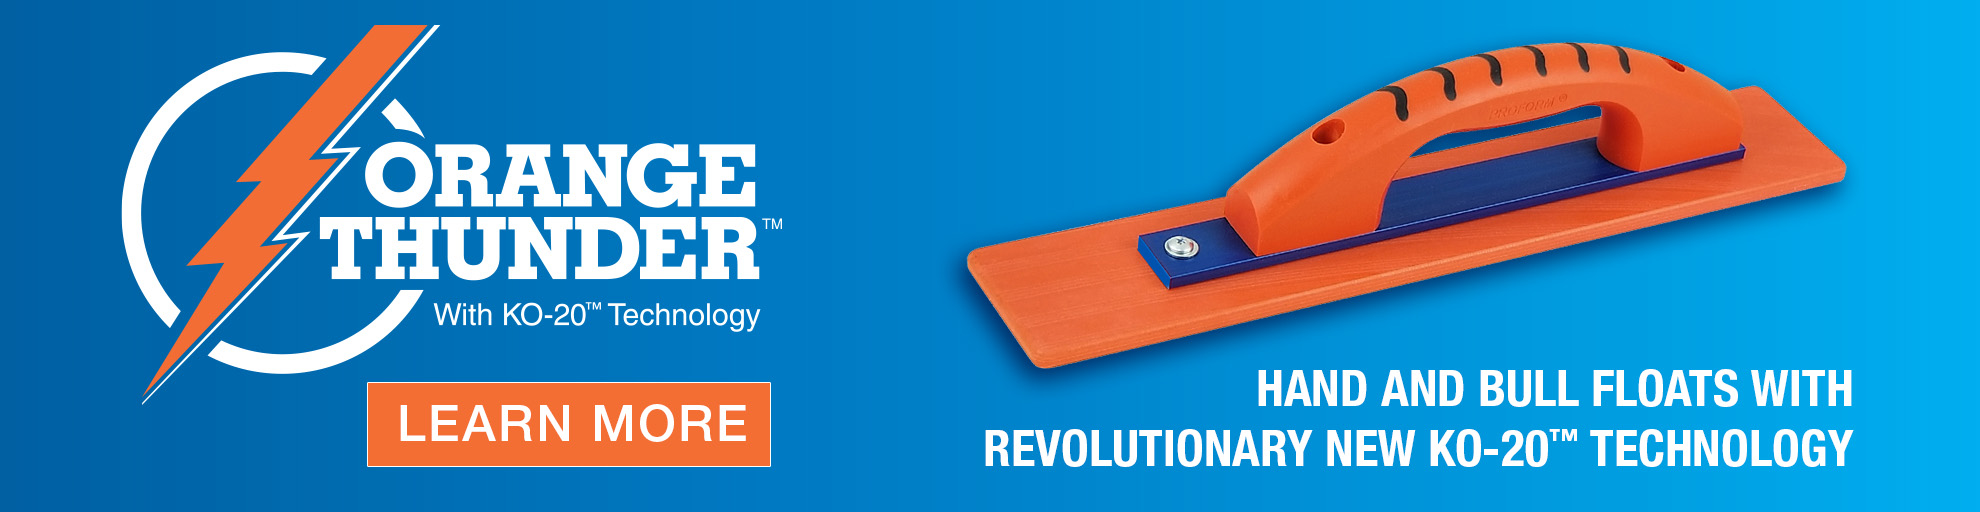 Orange Thunder™ Floating Tools with Revolutionary New KO-20™ Material